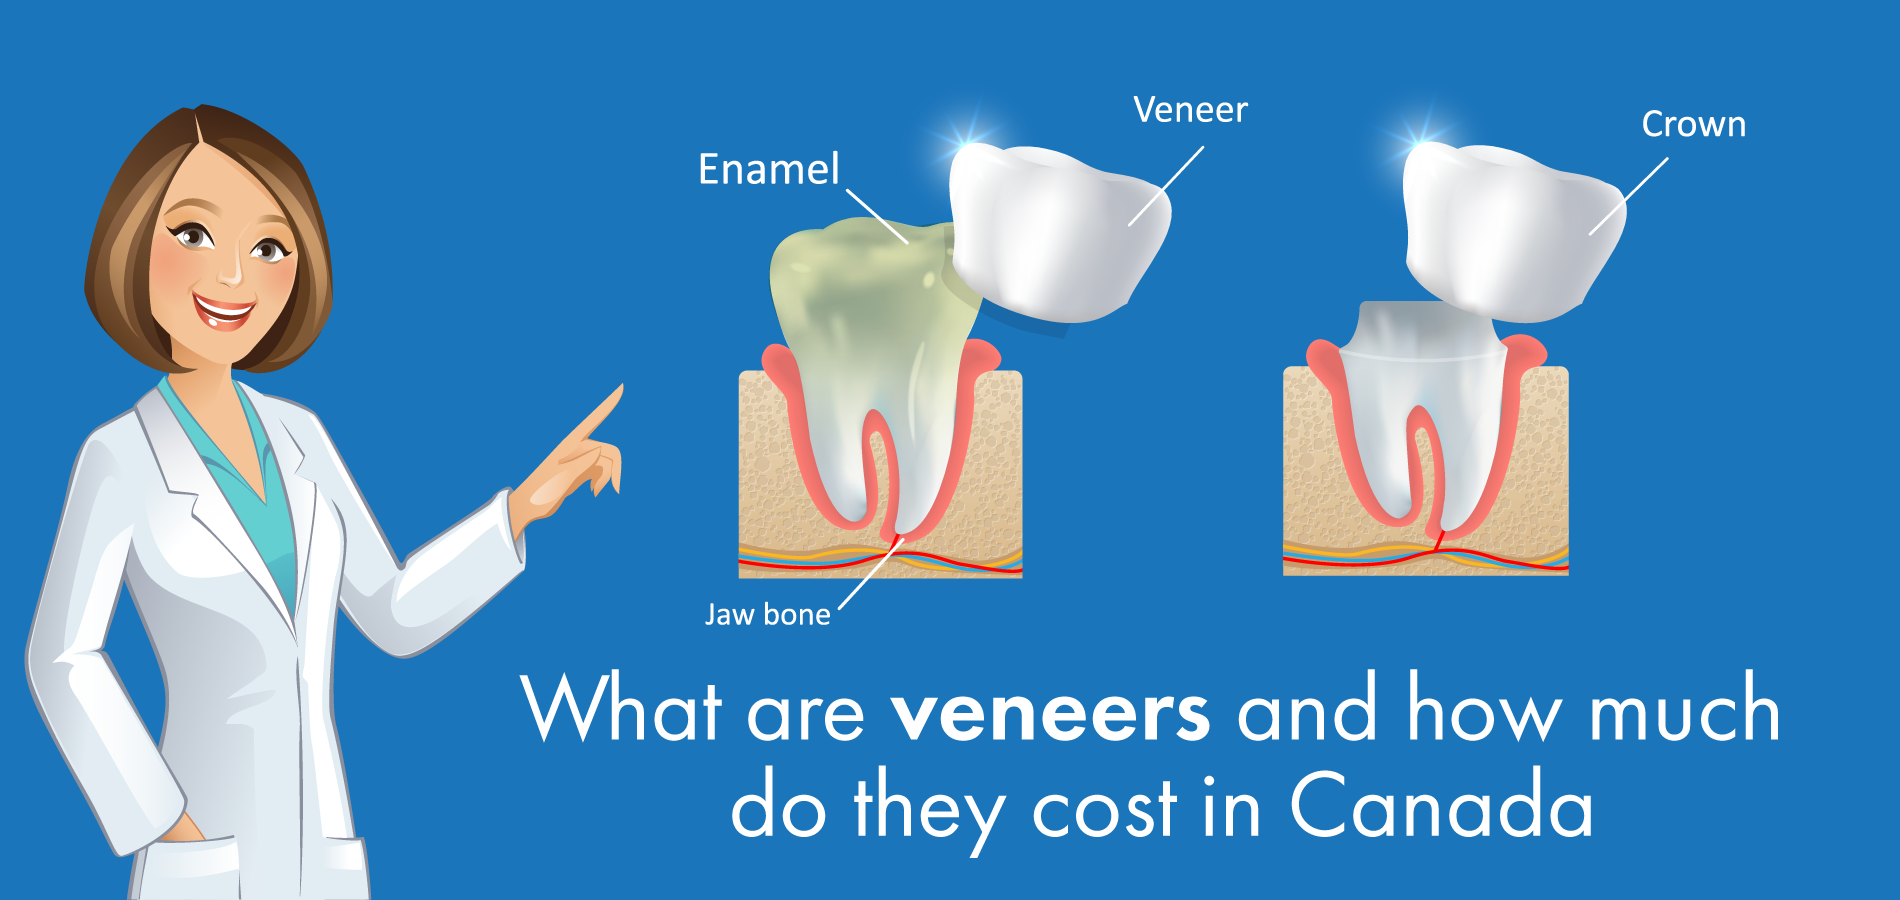 What are veneers and how much do they cost in Canada